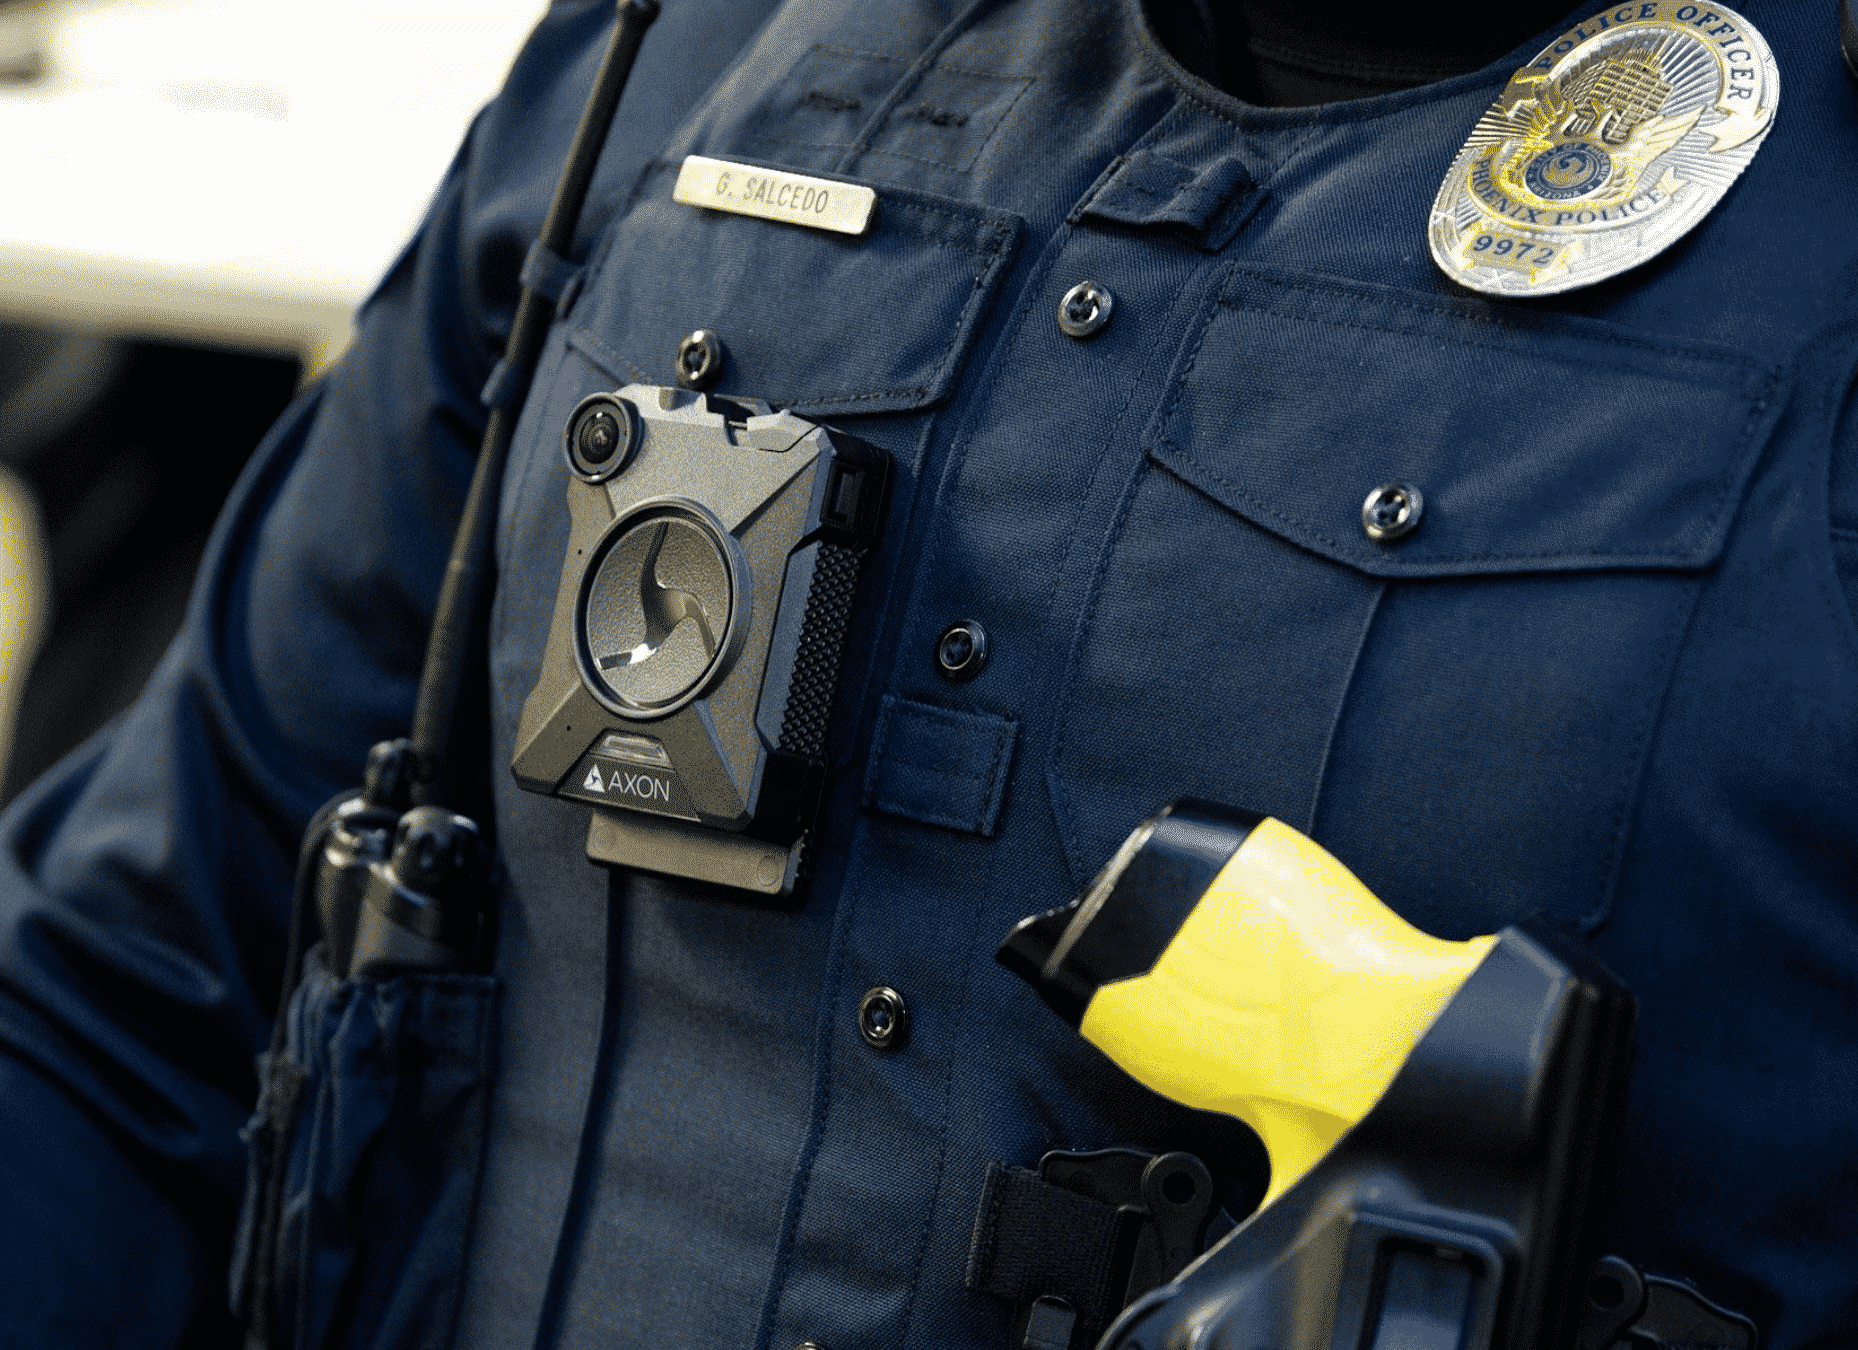 Phoenix Police with Body Cameras